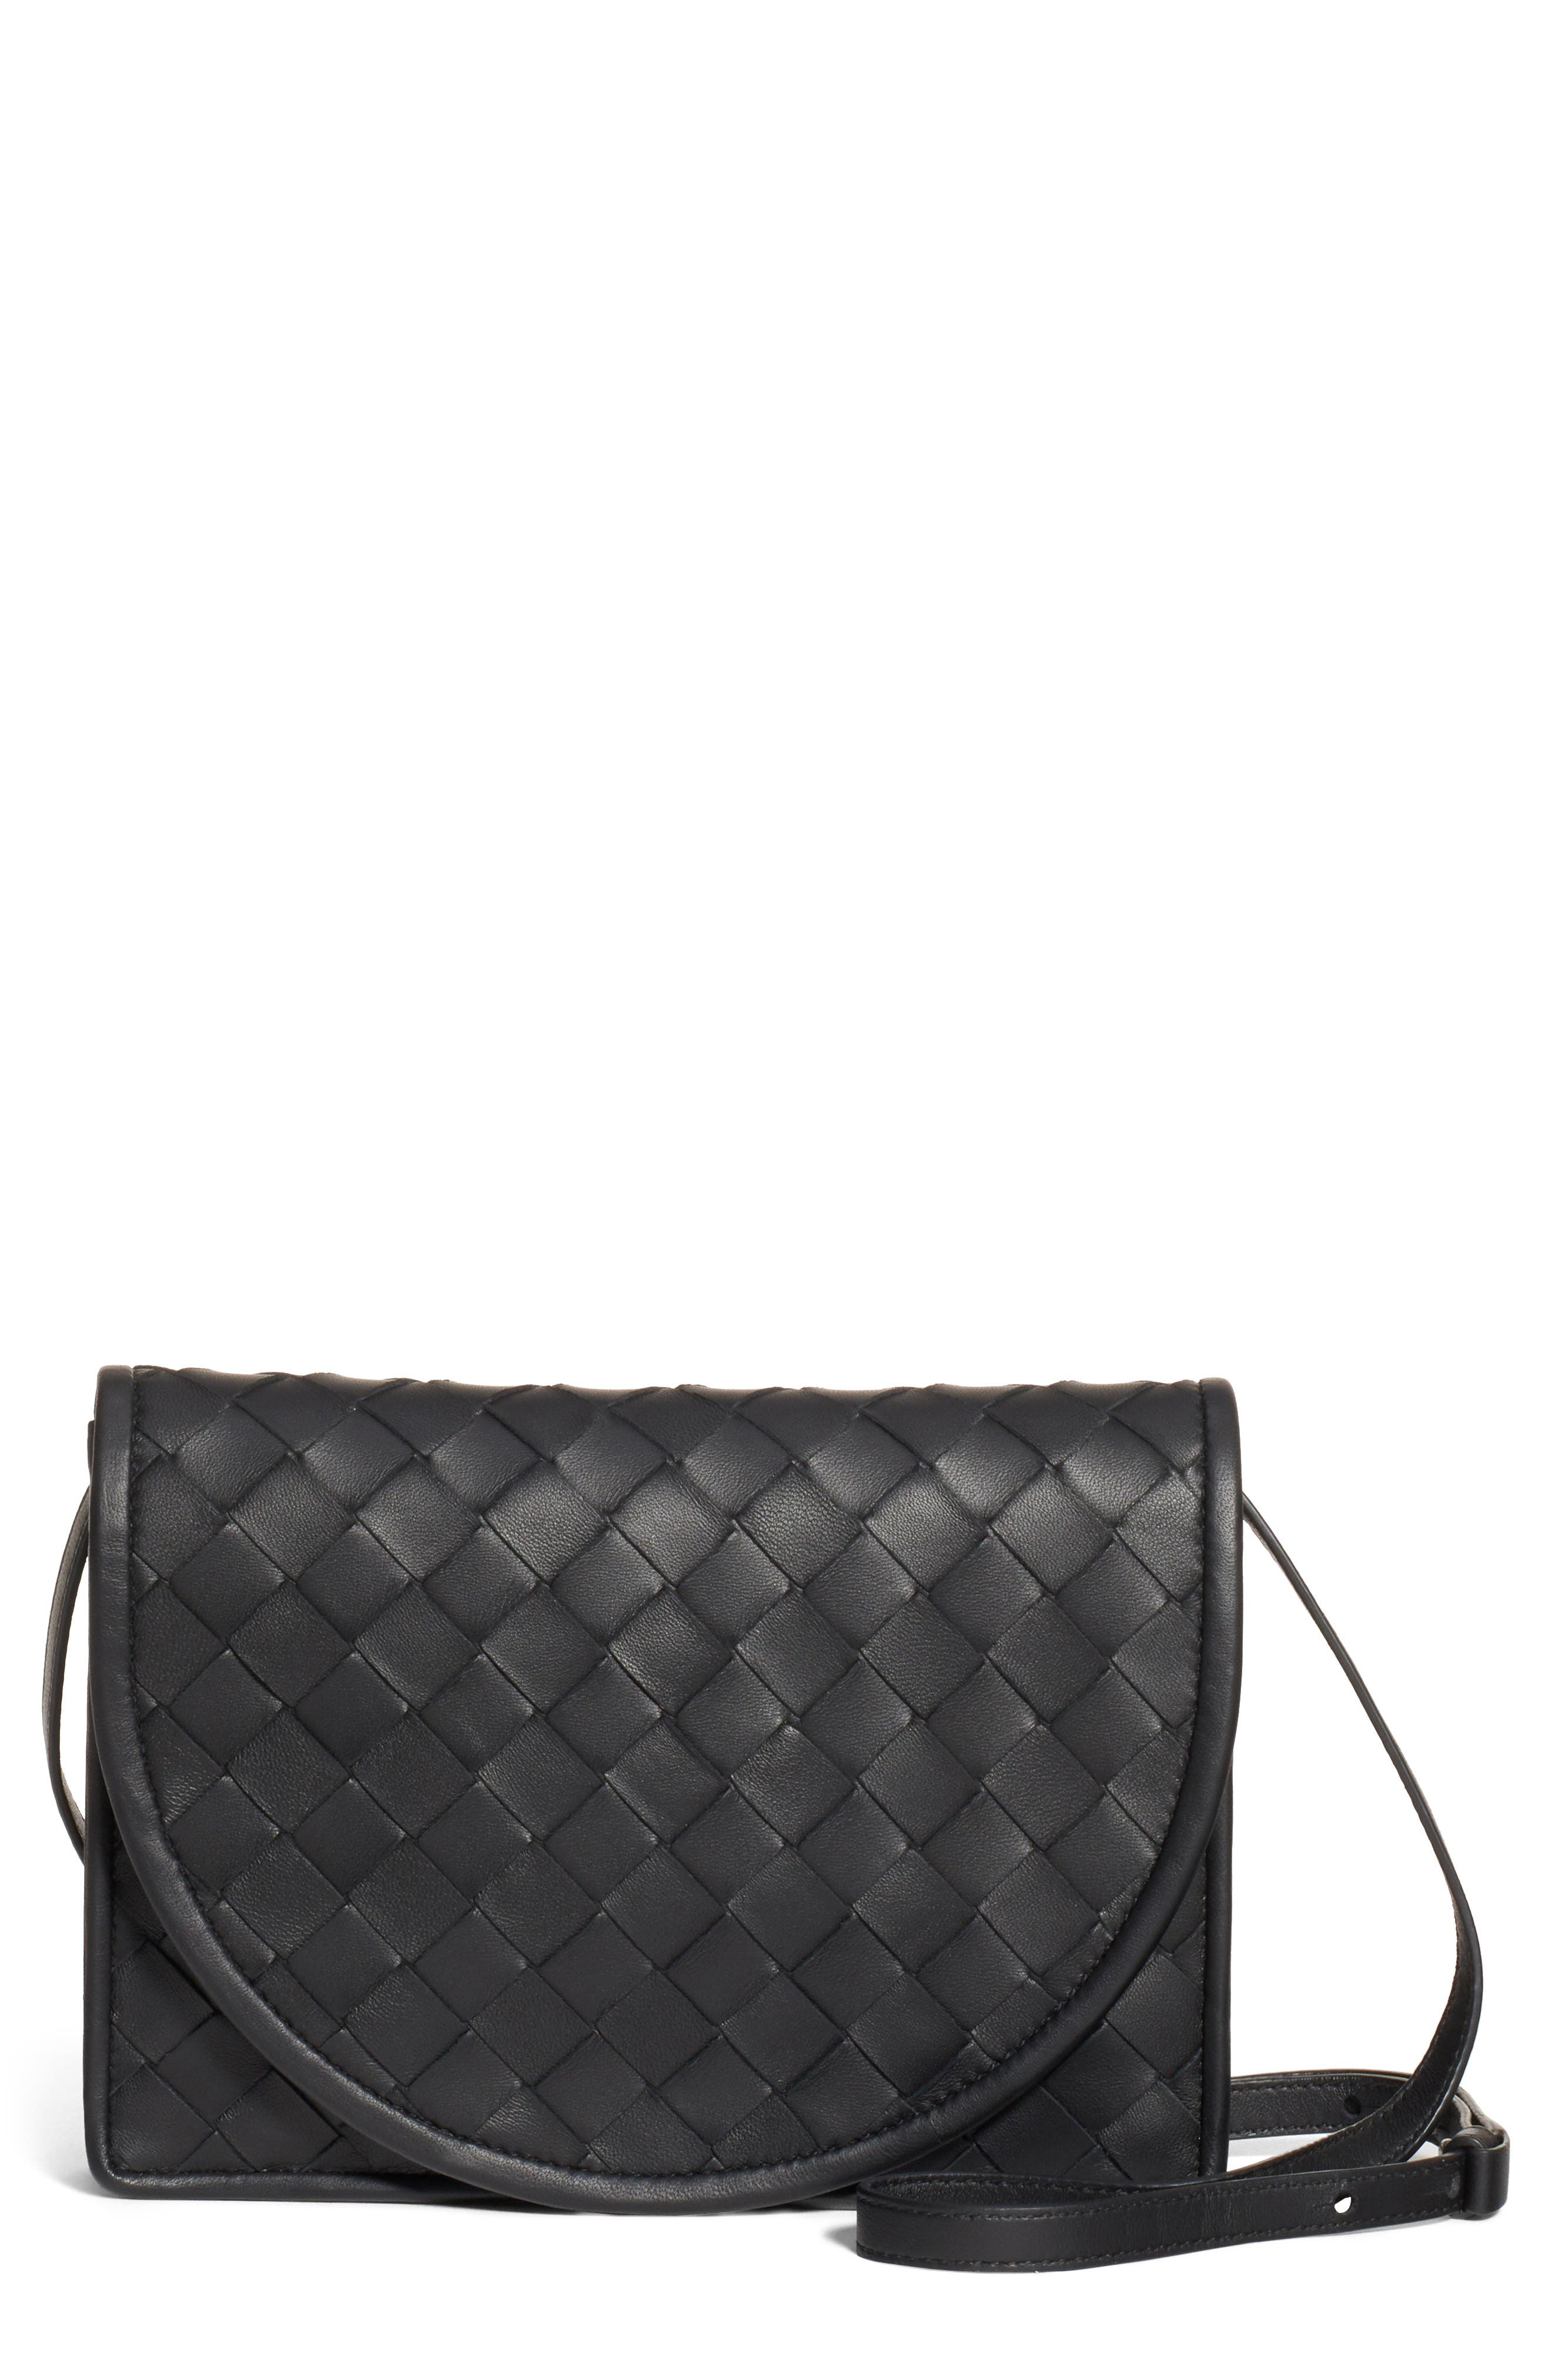 The label\\\'s iconic intrecciato motif brings intriguing dimension to a luxe leather wallet furnished with an optional crossbody strap for hands-free styling. Style Name: Bottega Veneta Intrecciato Leather Wallet On A Strap. Style Number: 5844865. Available in stores.